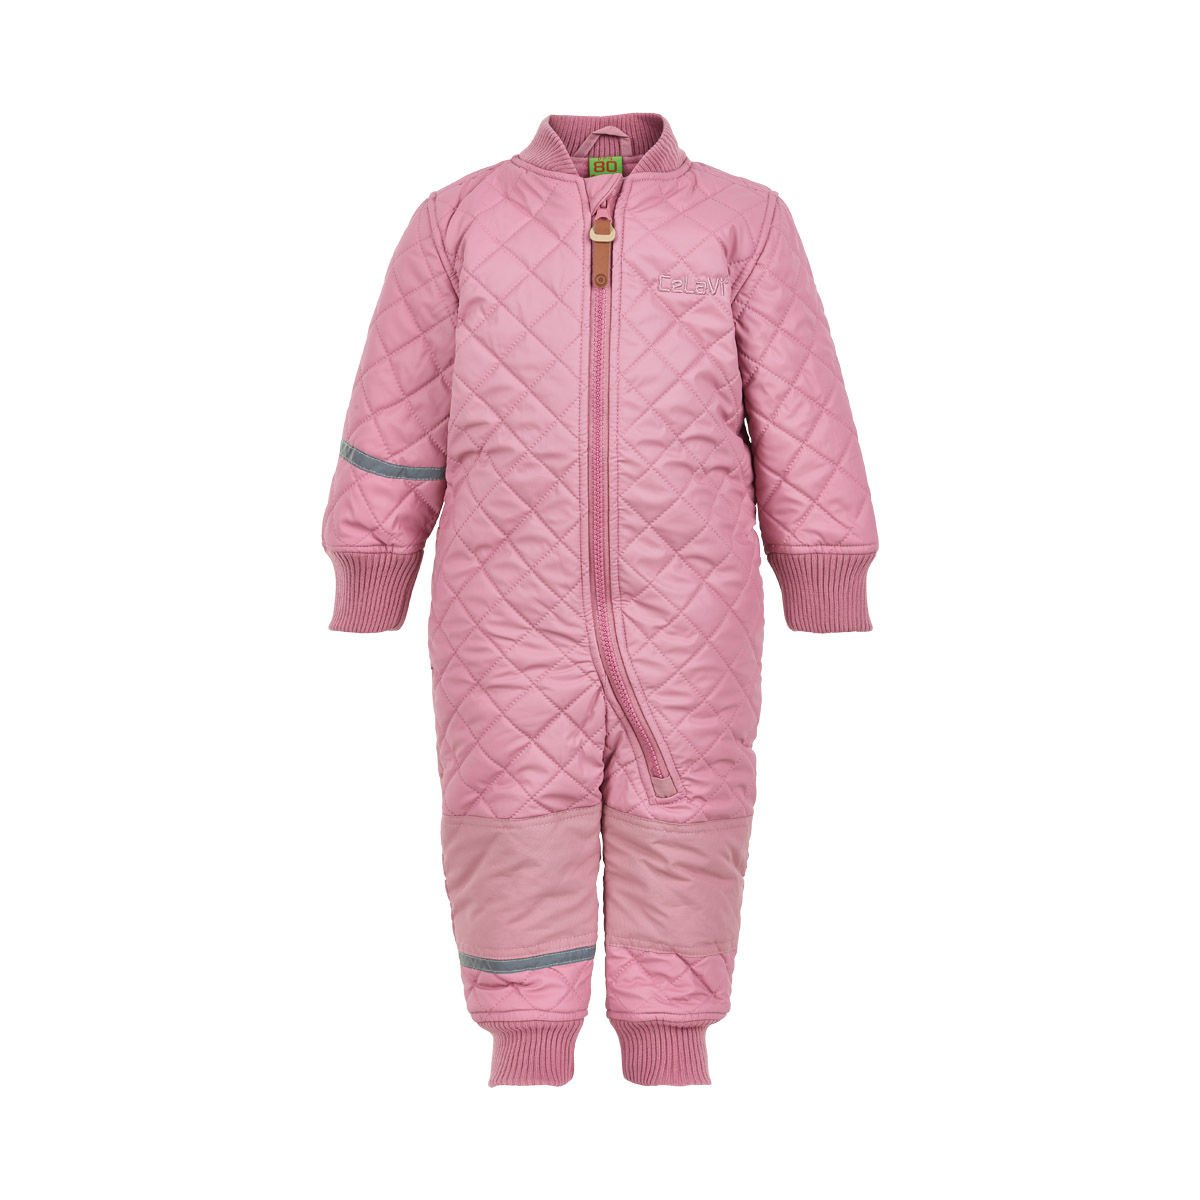 Thermal PU Quilted Windproof Suit - Boy Girl Unisex - Fleece Lining Age 9-24 Months Rose by CeLaVi